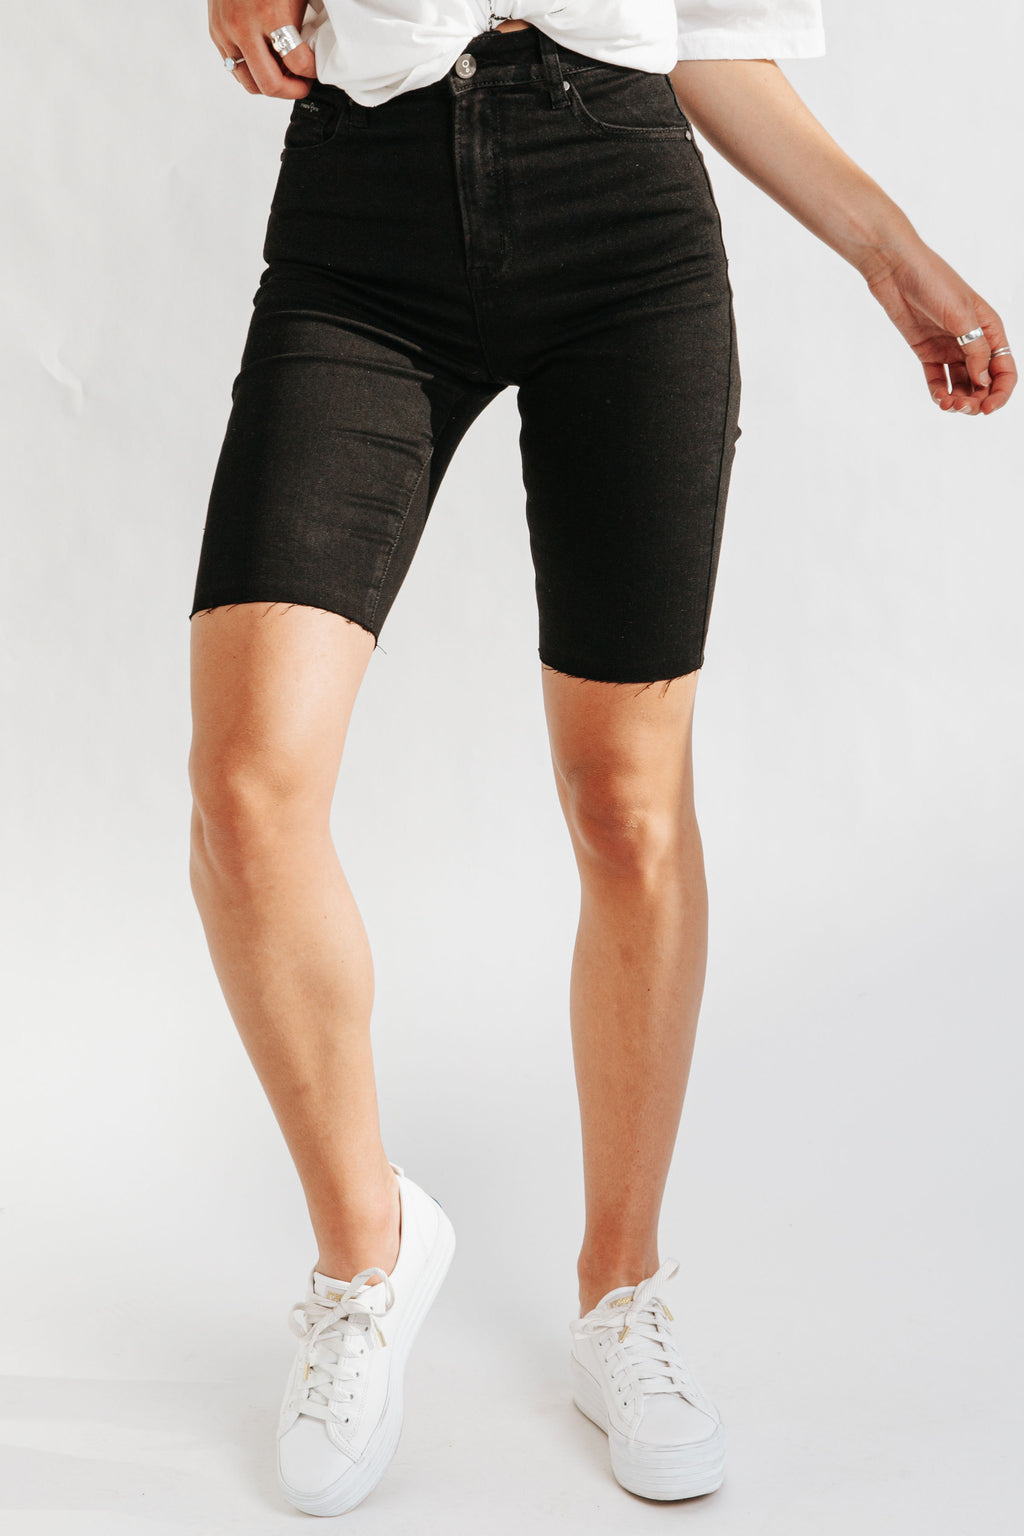 The Ashburn High Rise Denim Biker Short in Black, studio shoot; front view